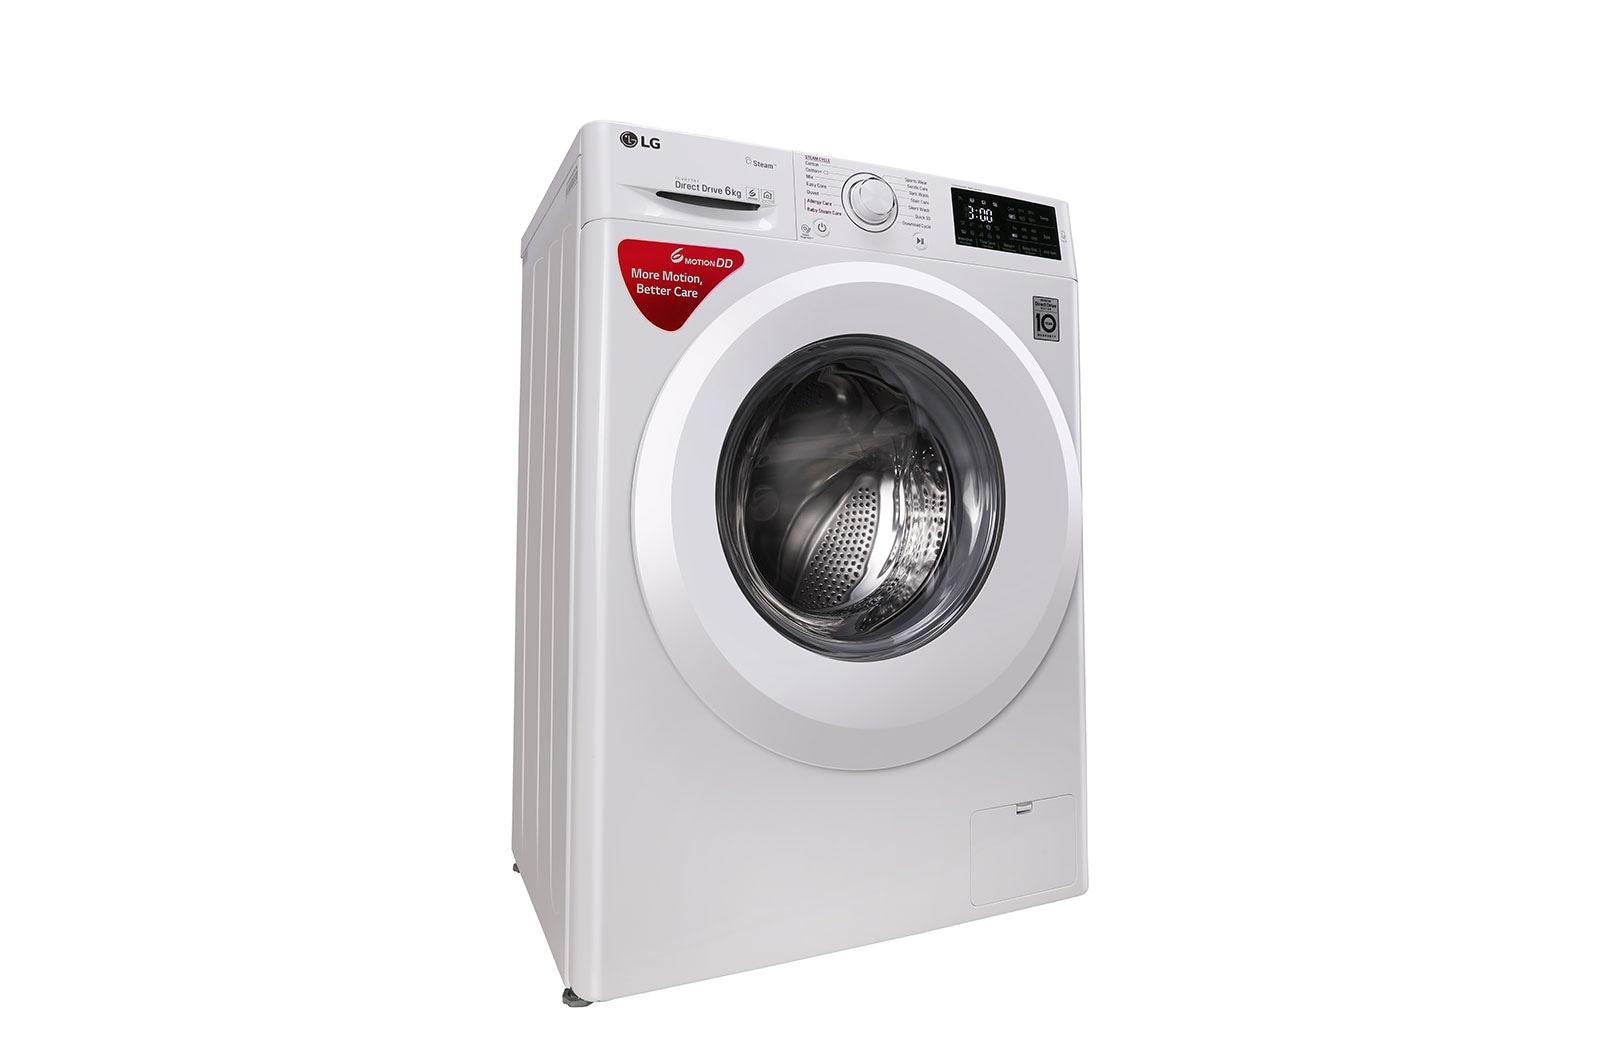 LG FHT1006HNW 6 Kg Front Loading Washing Machine, Steam™ Technology on